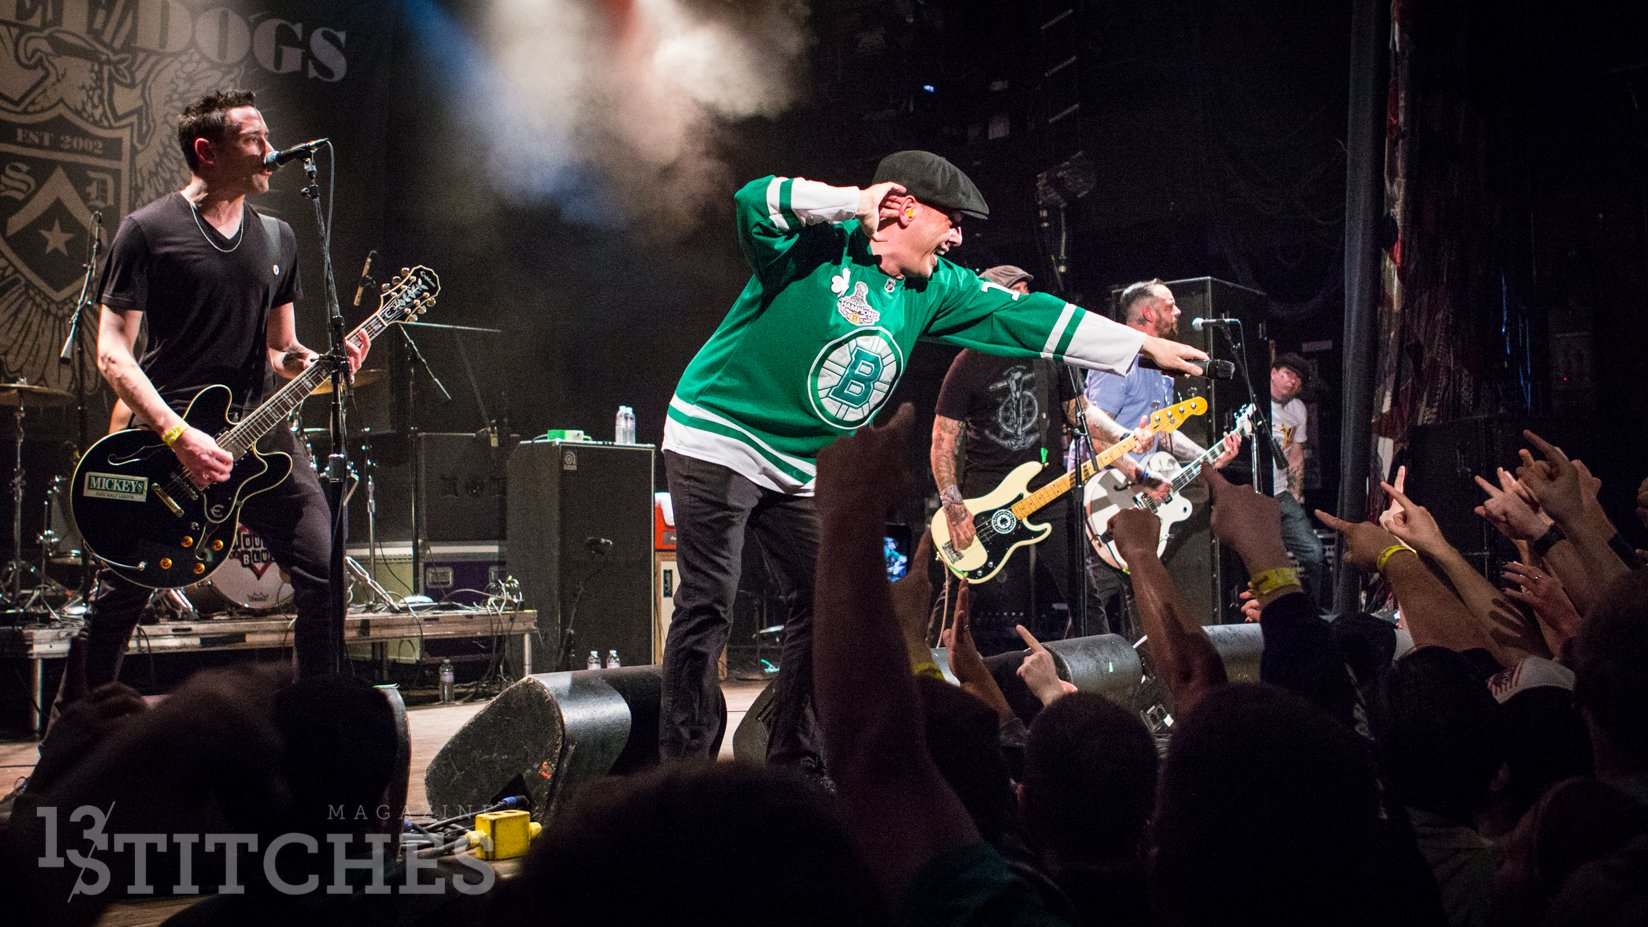 street dogs - house of blues anaheim - 13 stitches magazine